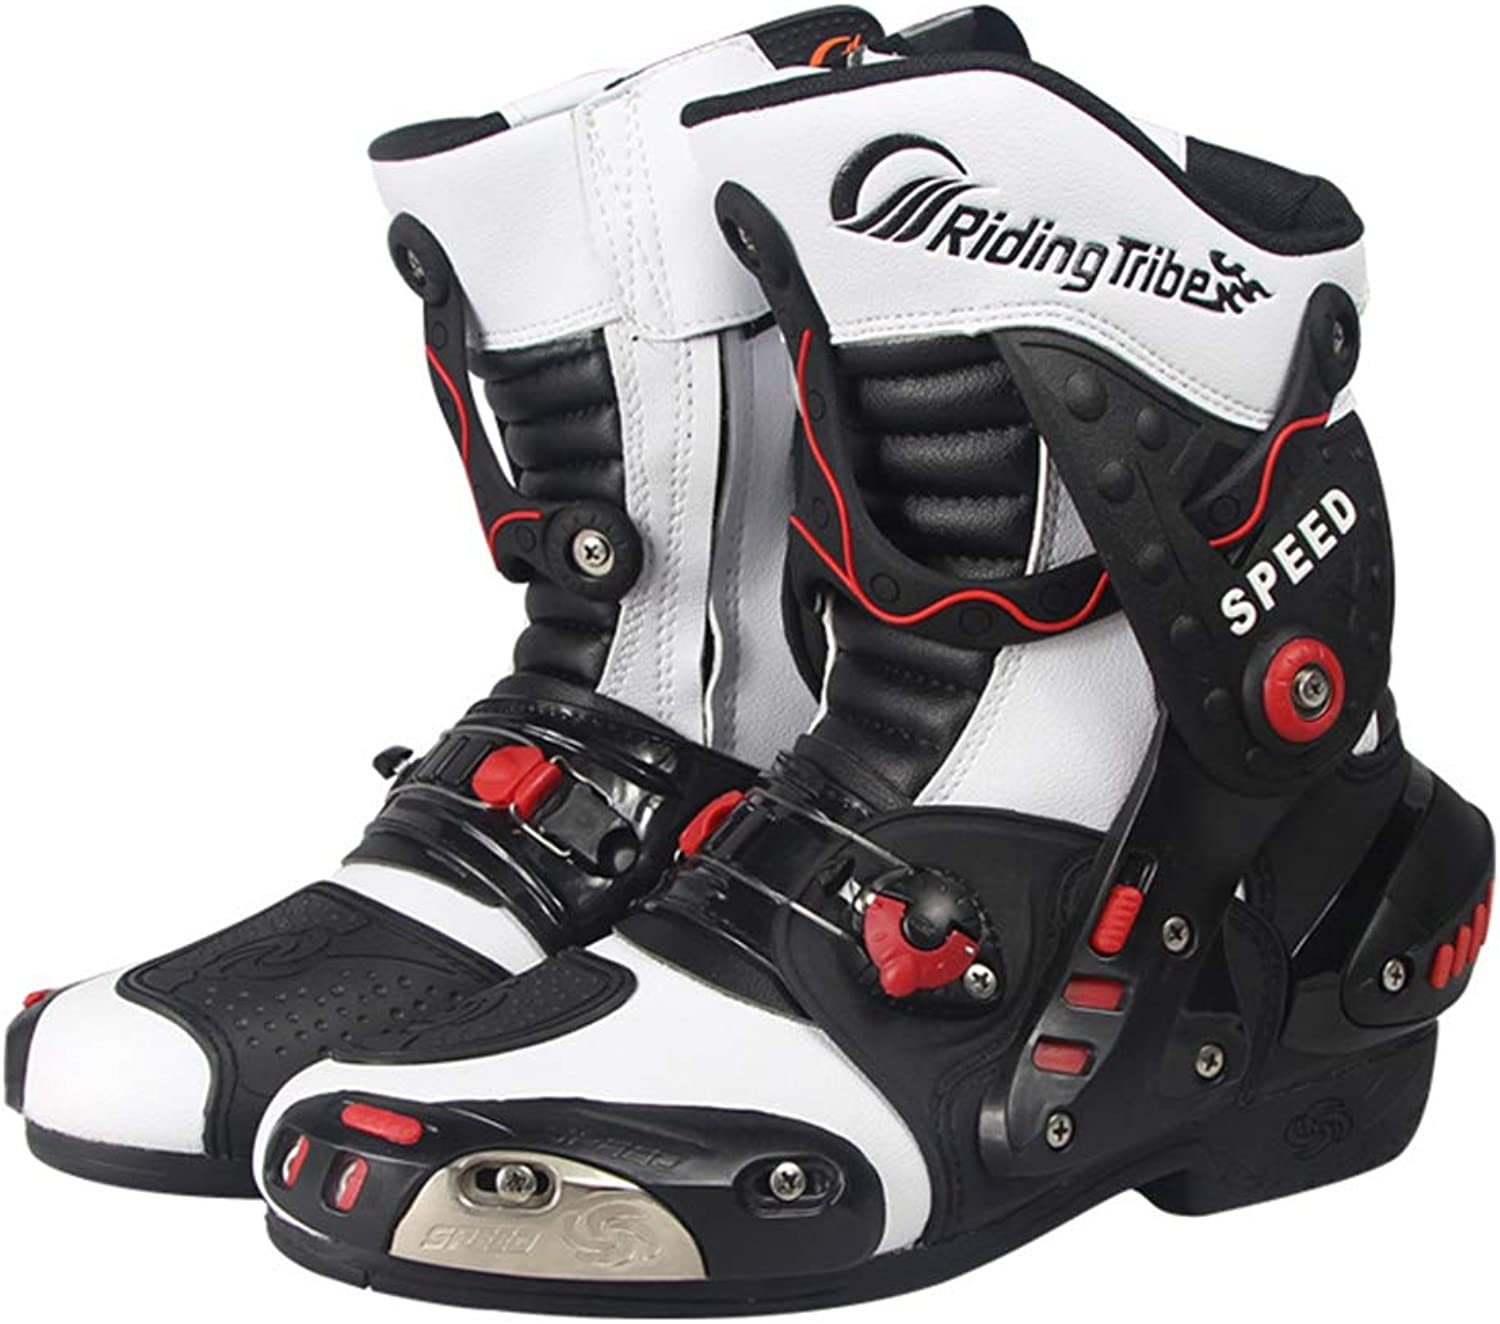 Men's Motorcycle Boots, Motorcycle Racing Boots shoes with Knob Type Elastic Adjustment Device and Adjustable Vent